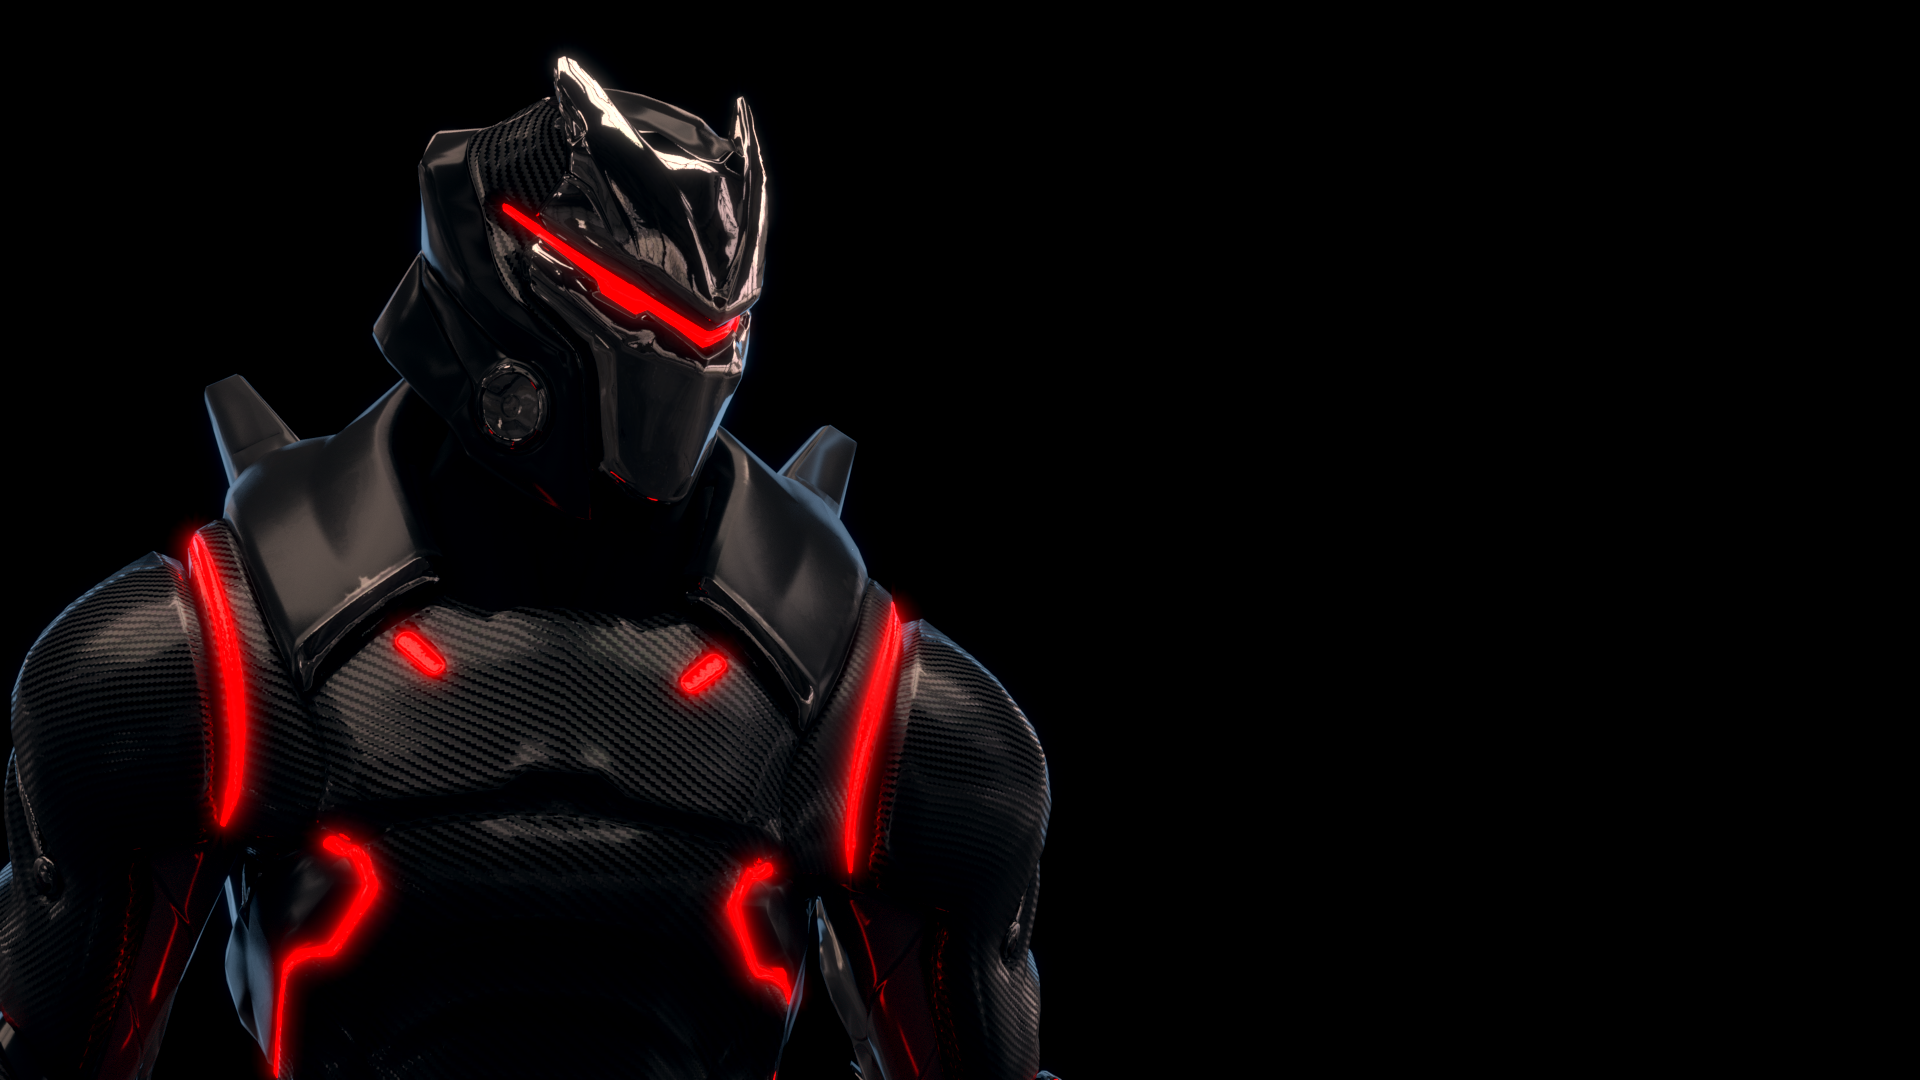 Omega Wallpaper By Calvin Jd Fortnite Battle Royale Fortnite Black Backgrounds Cool Wallpaper